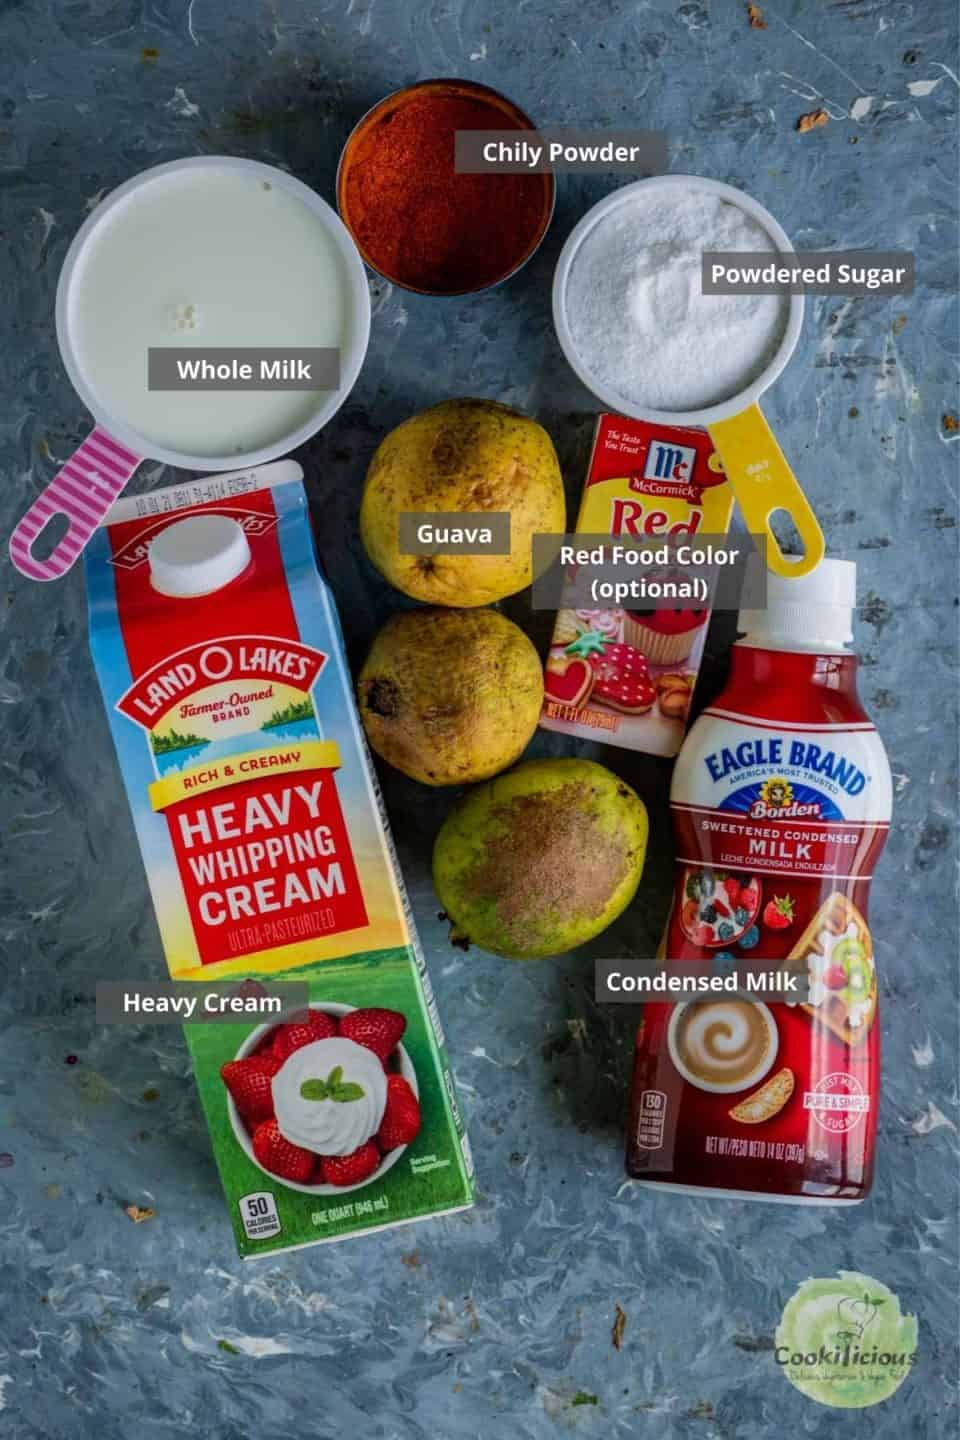 all the ingredients needed to make guava ice cream placed on a table with labels on them